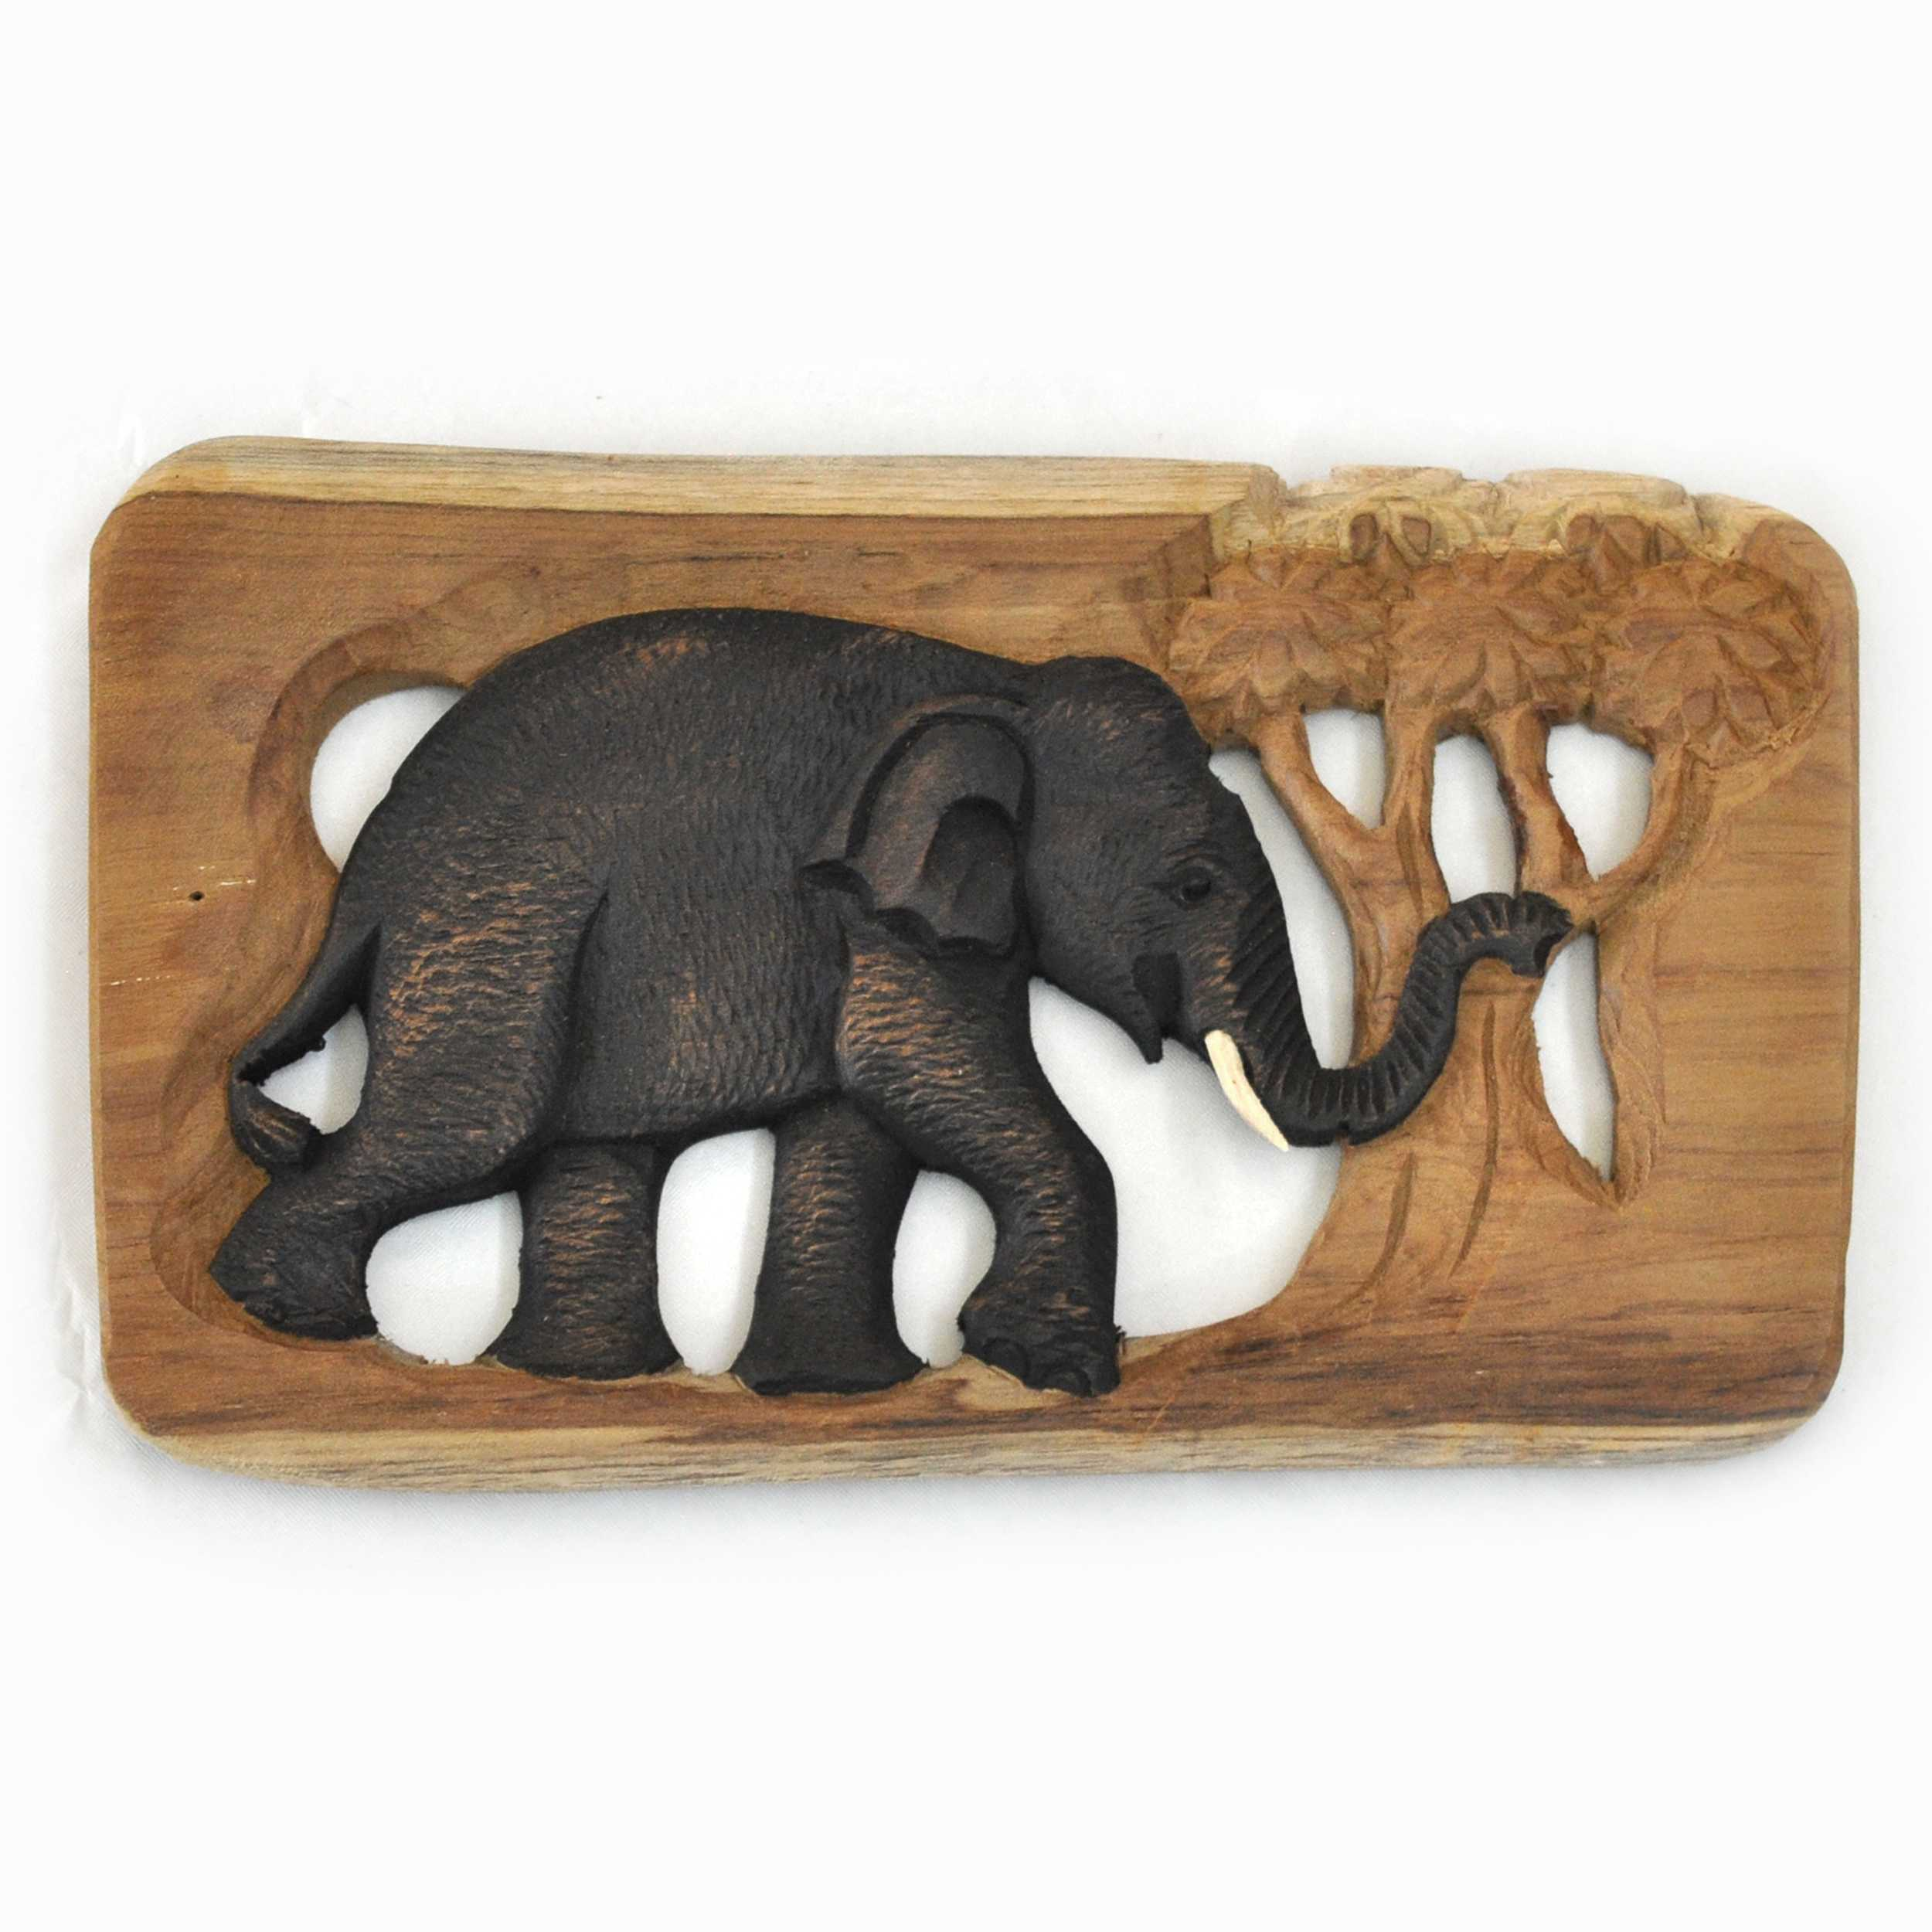 Wooden wall deco Elephants